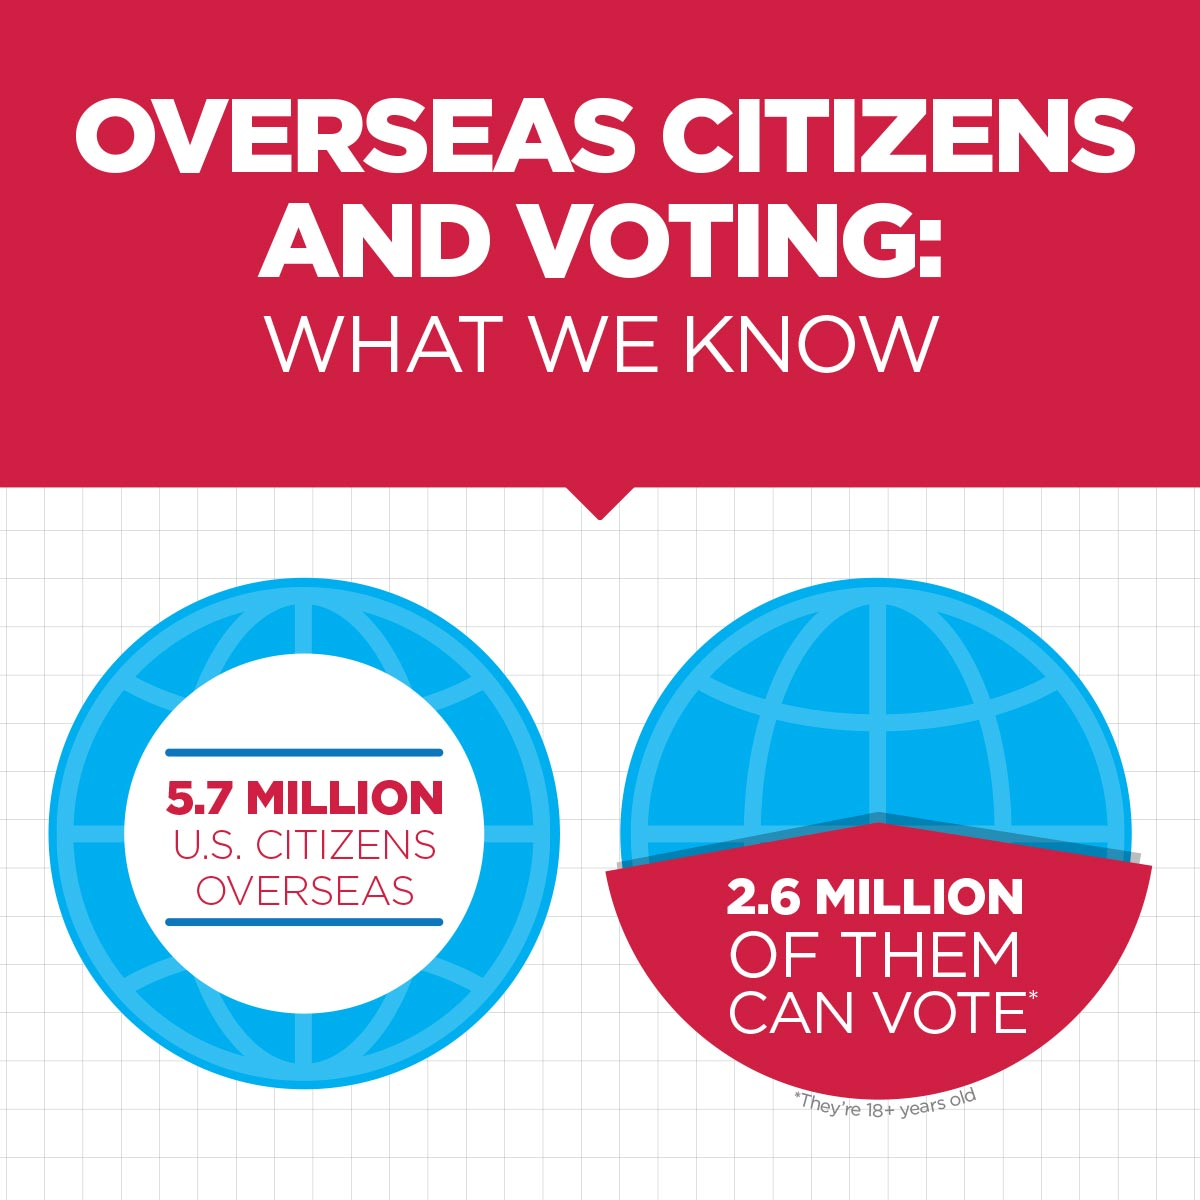 Overseas Citizens and Voting